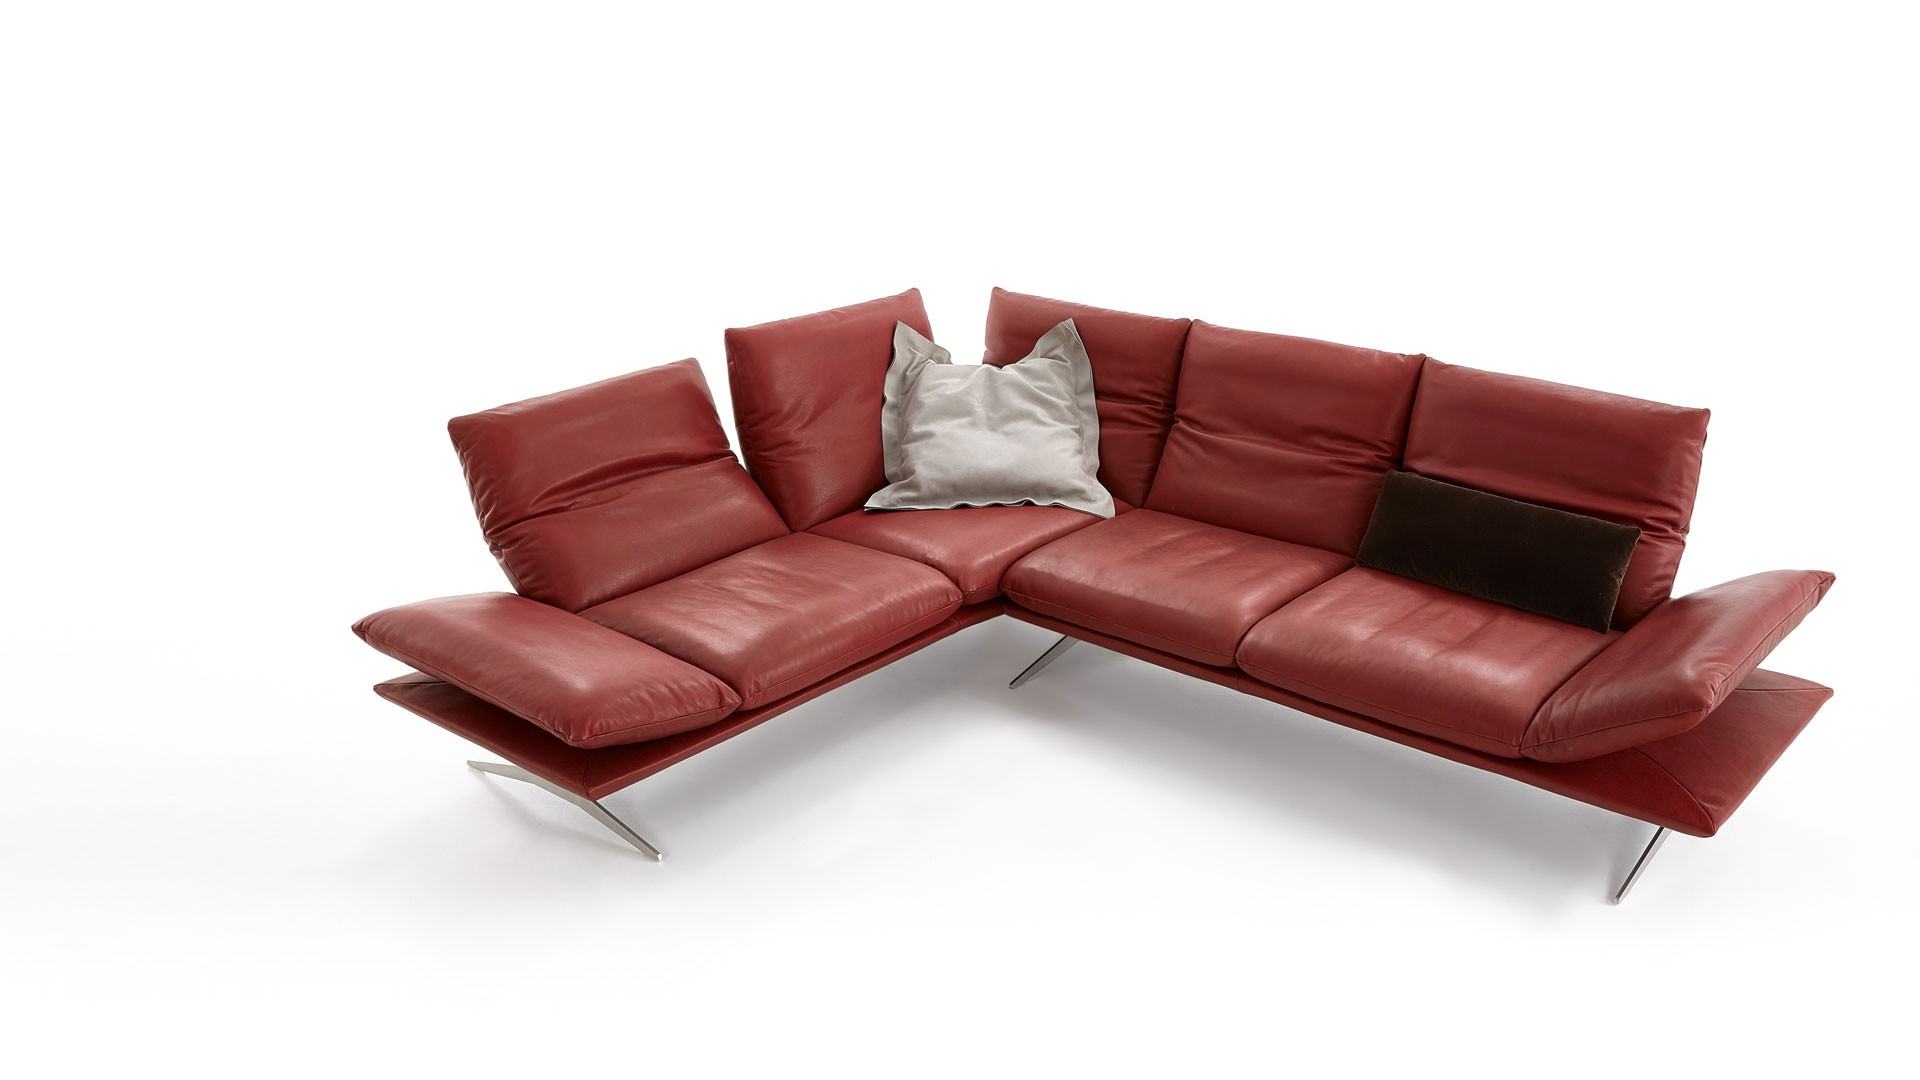 Ecksofa Venda Sofas En Forma De U 3id6 Did You Know So Many Sofa Styles Rci